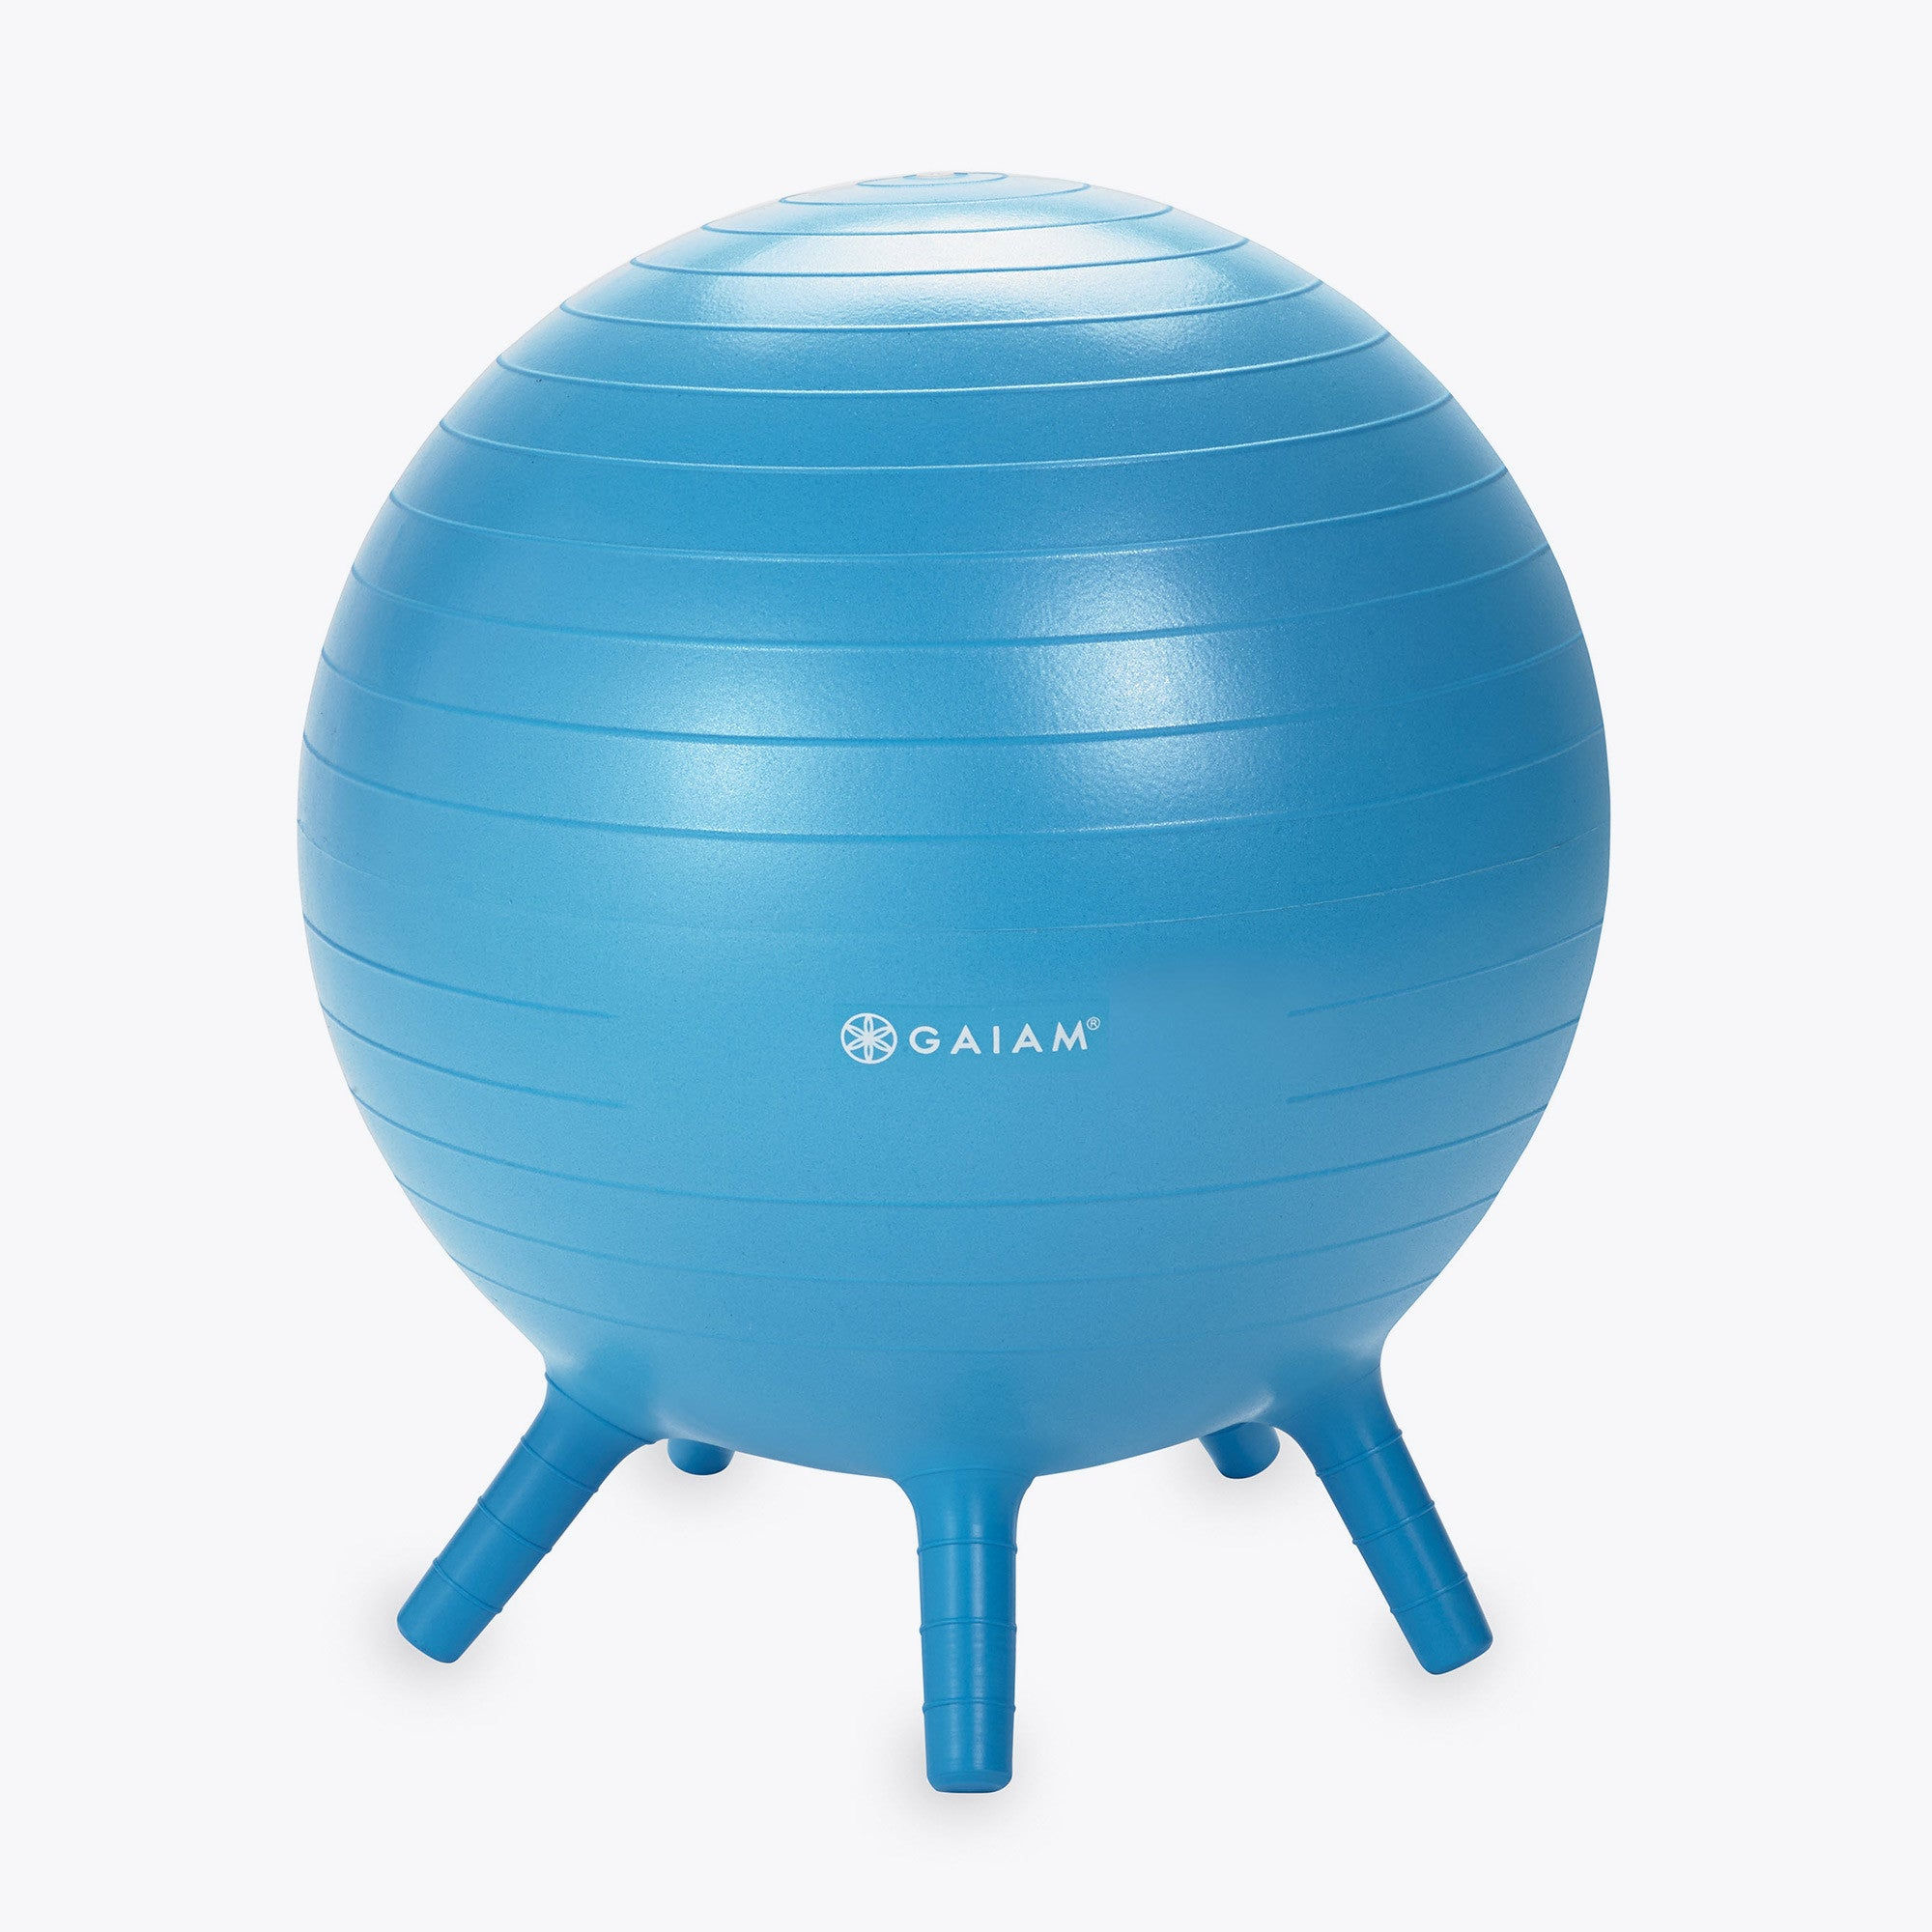 Gaiam Kids Stay-N-Play Balance Ball Alternative Seating XL 52cm, Blue